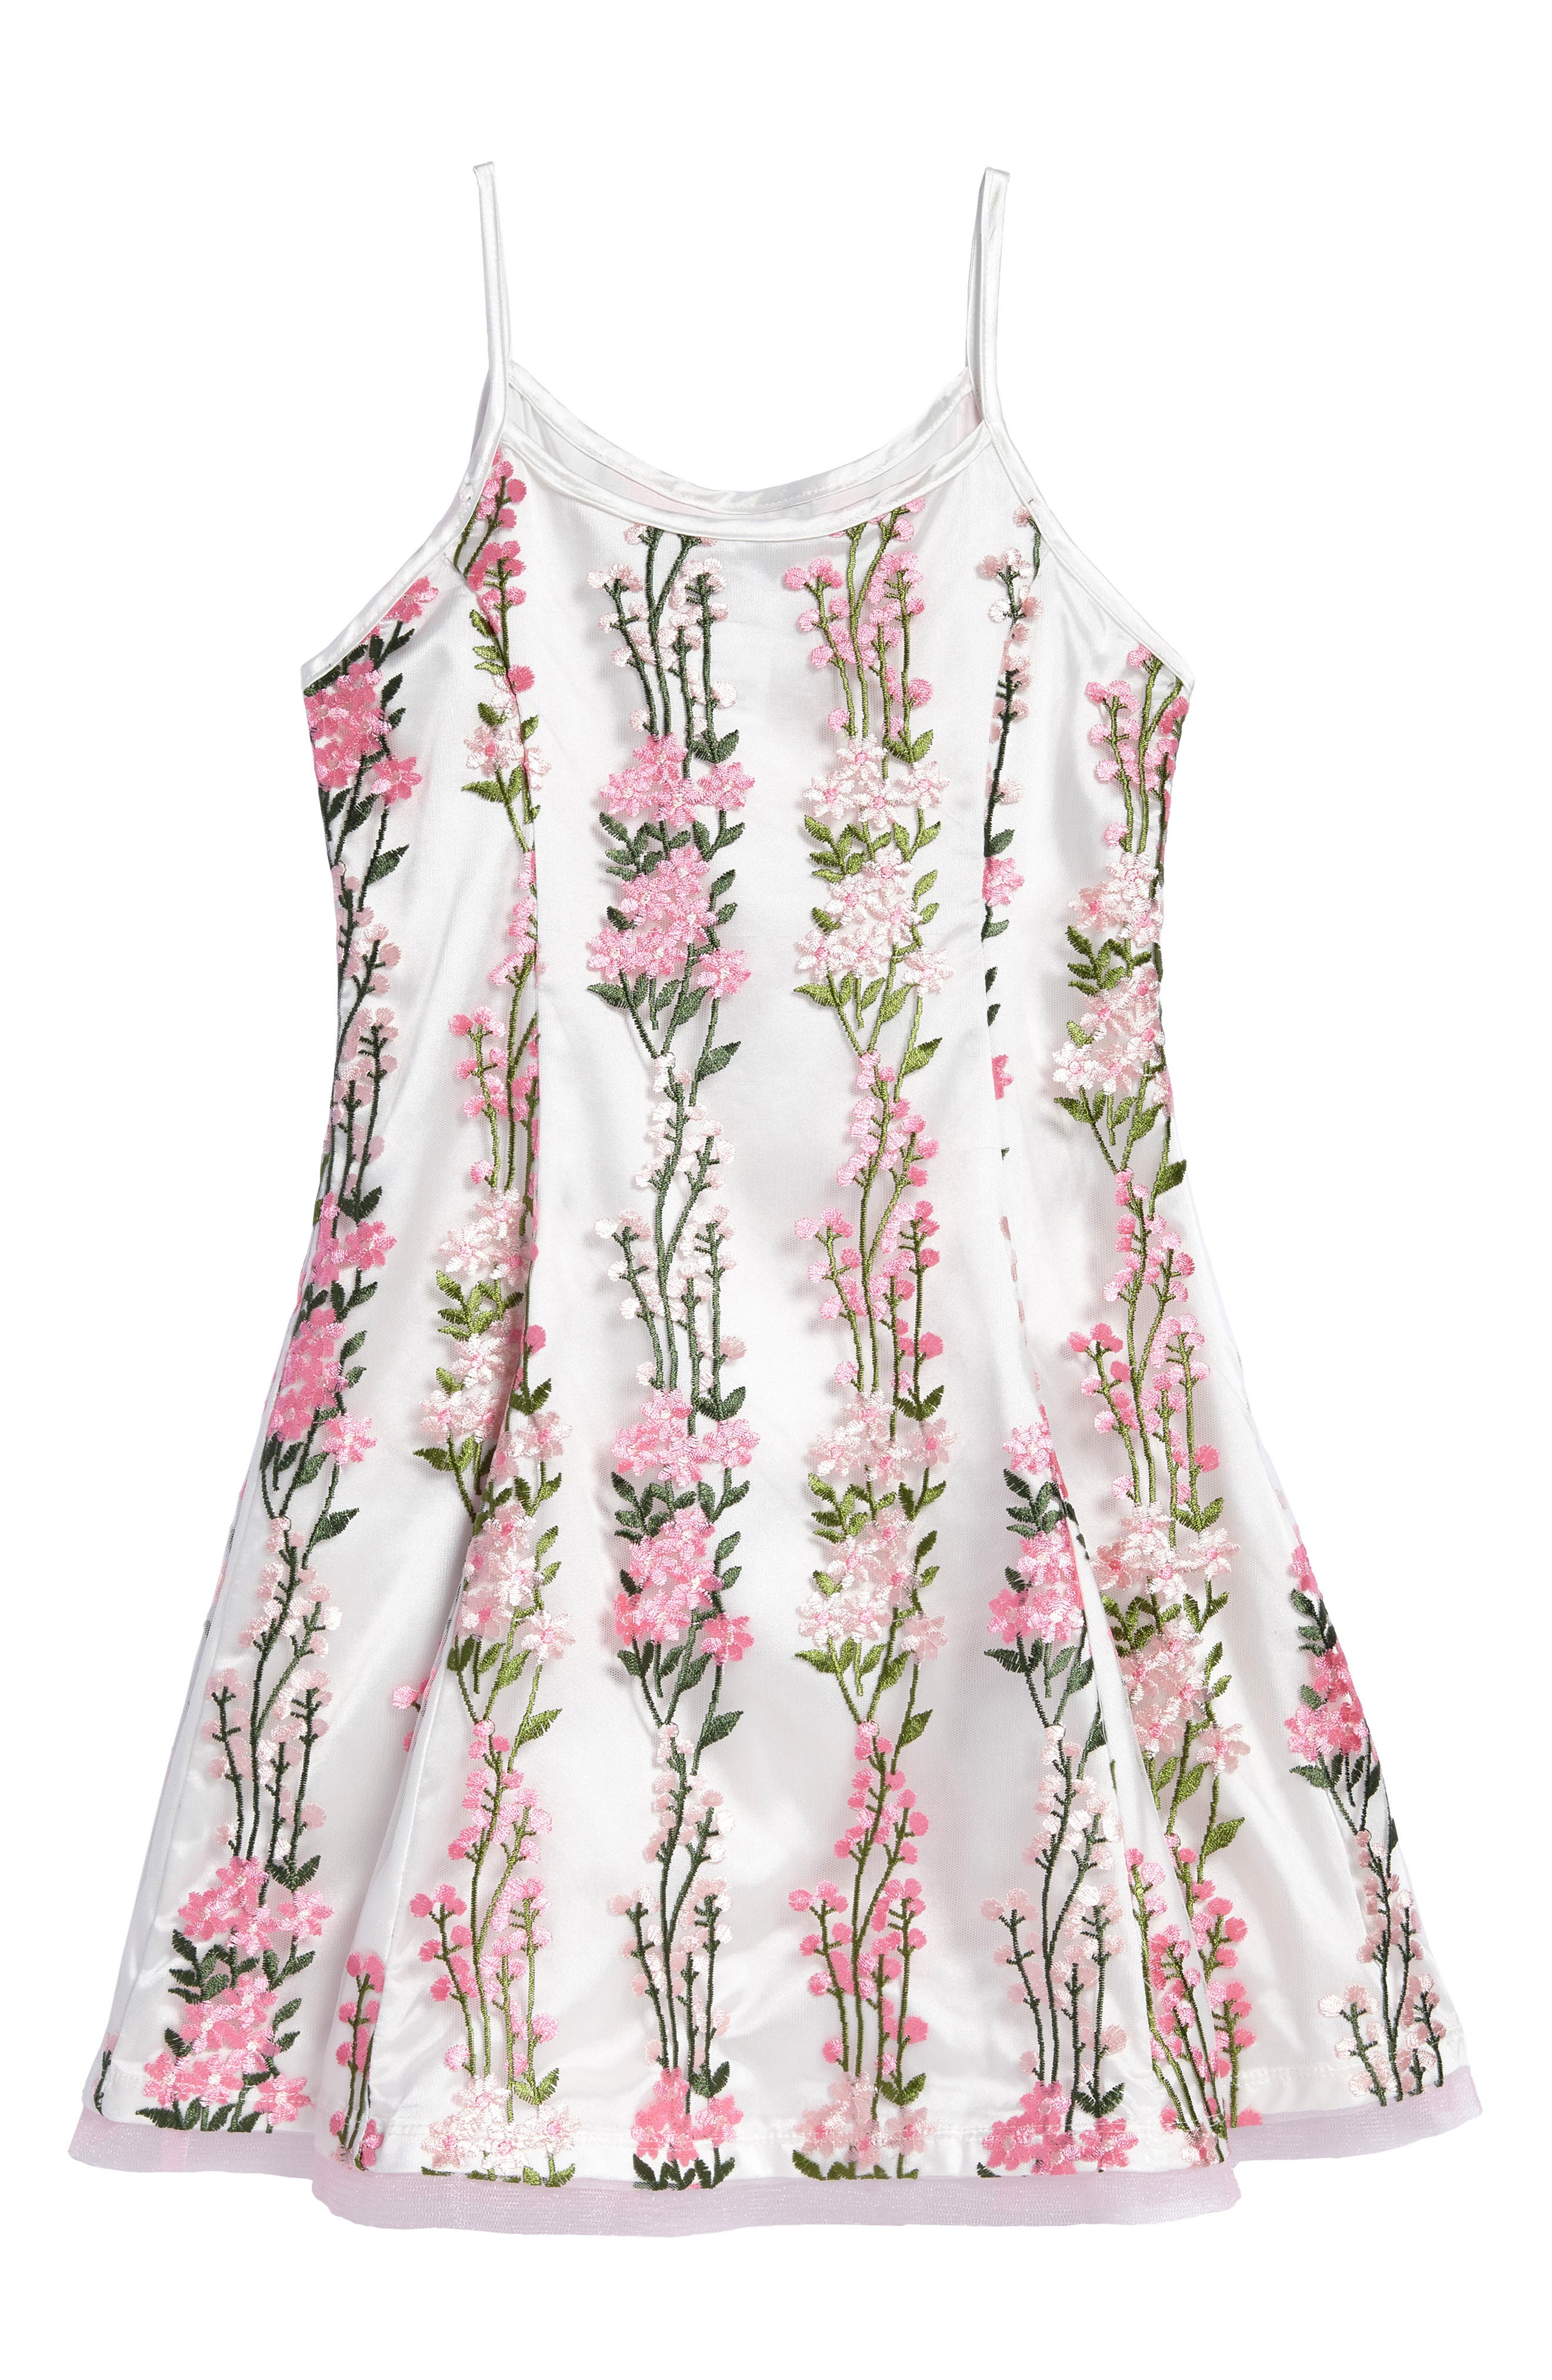 Floral Embroidered Dress,                             Main thumbnail 1, color,                             900